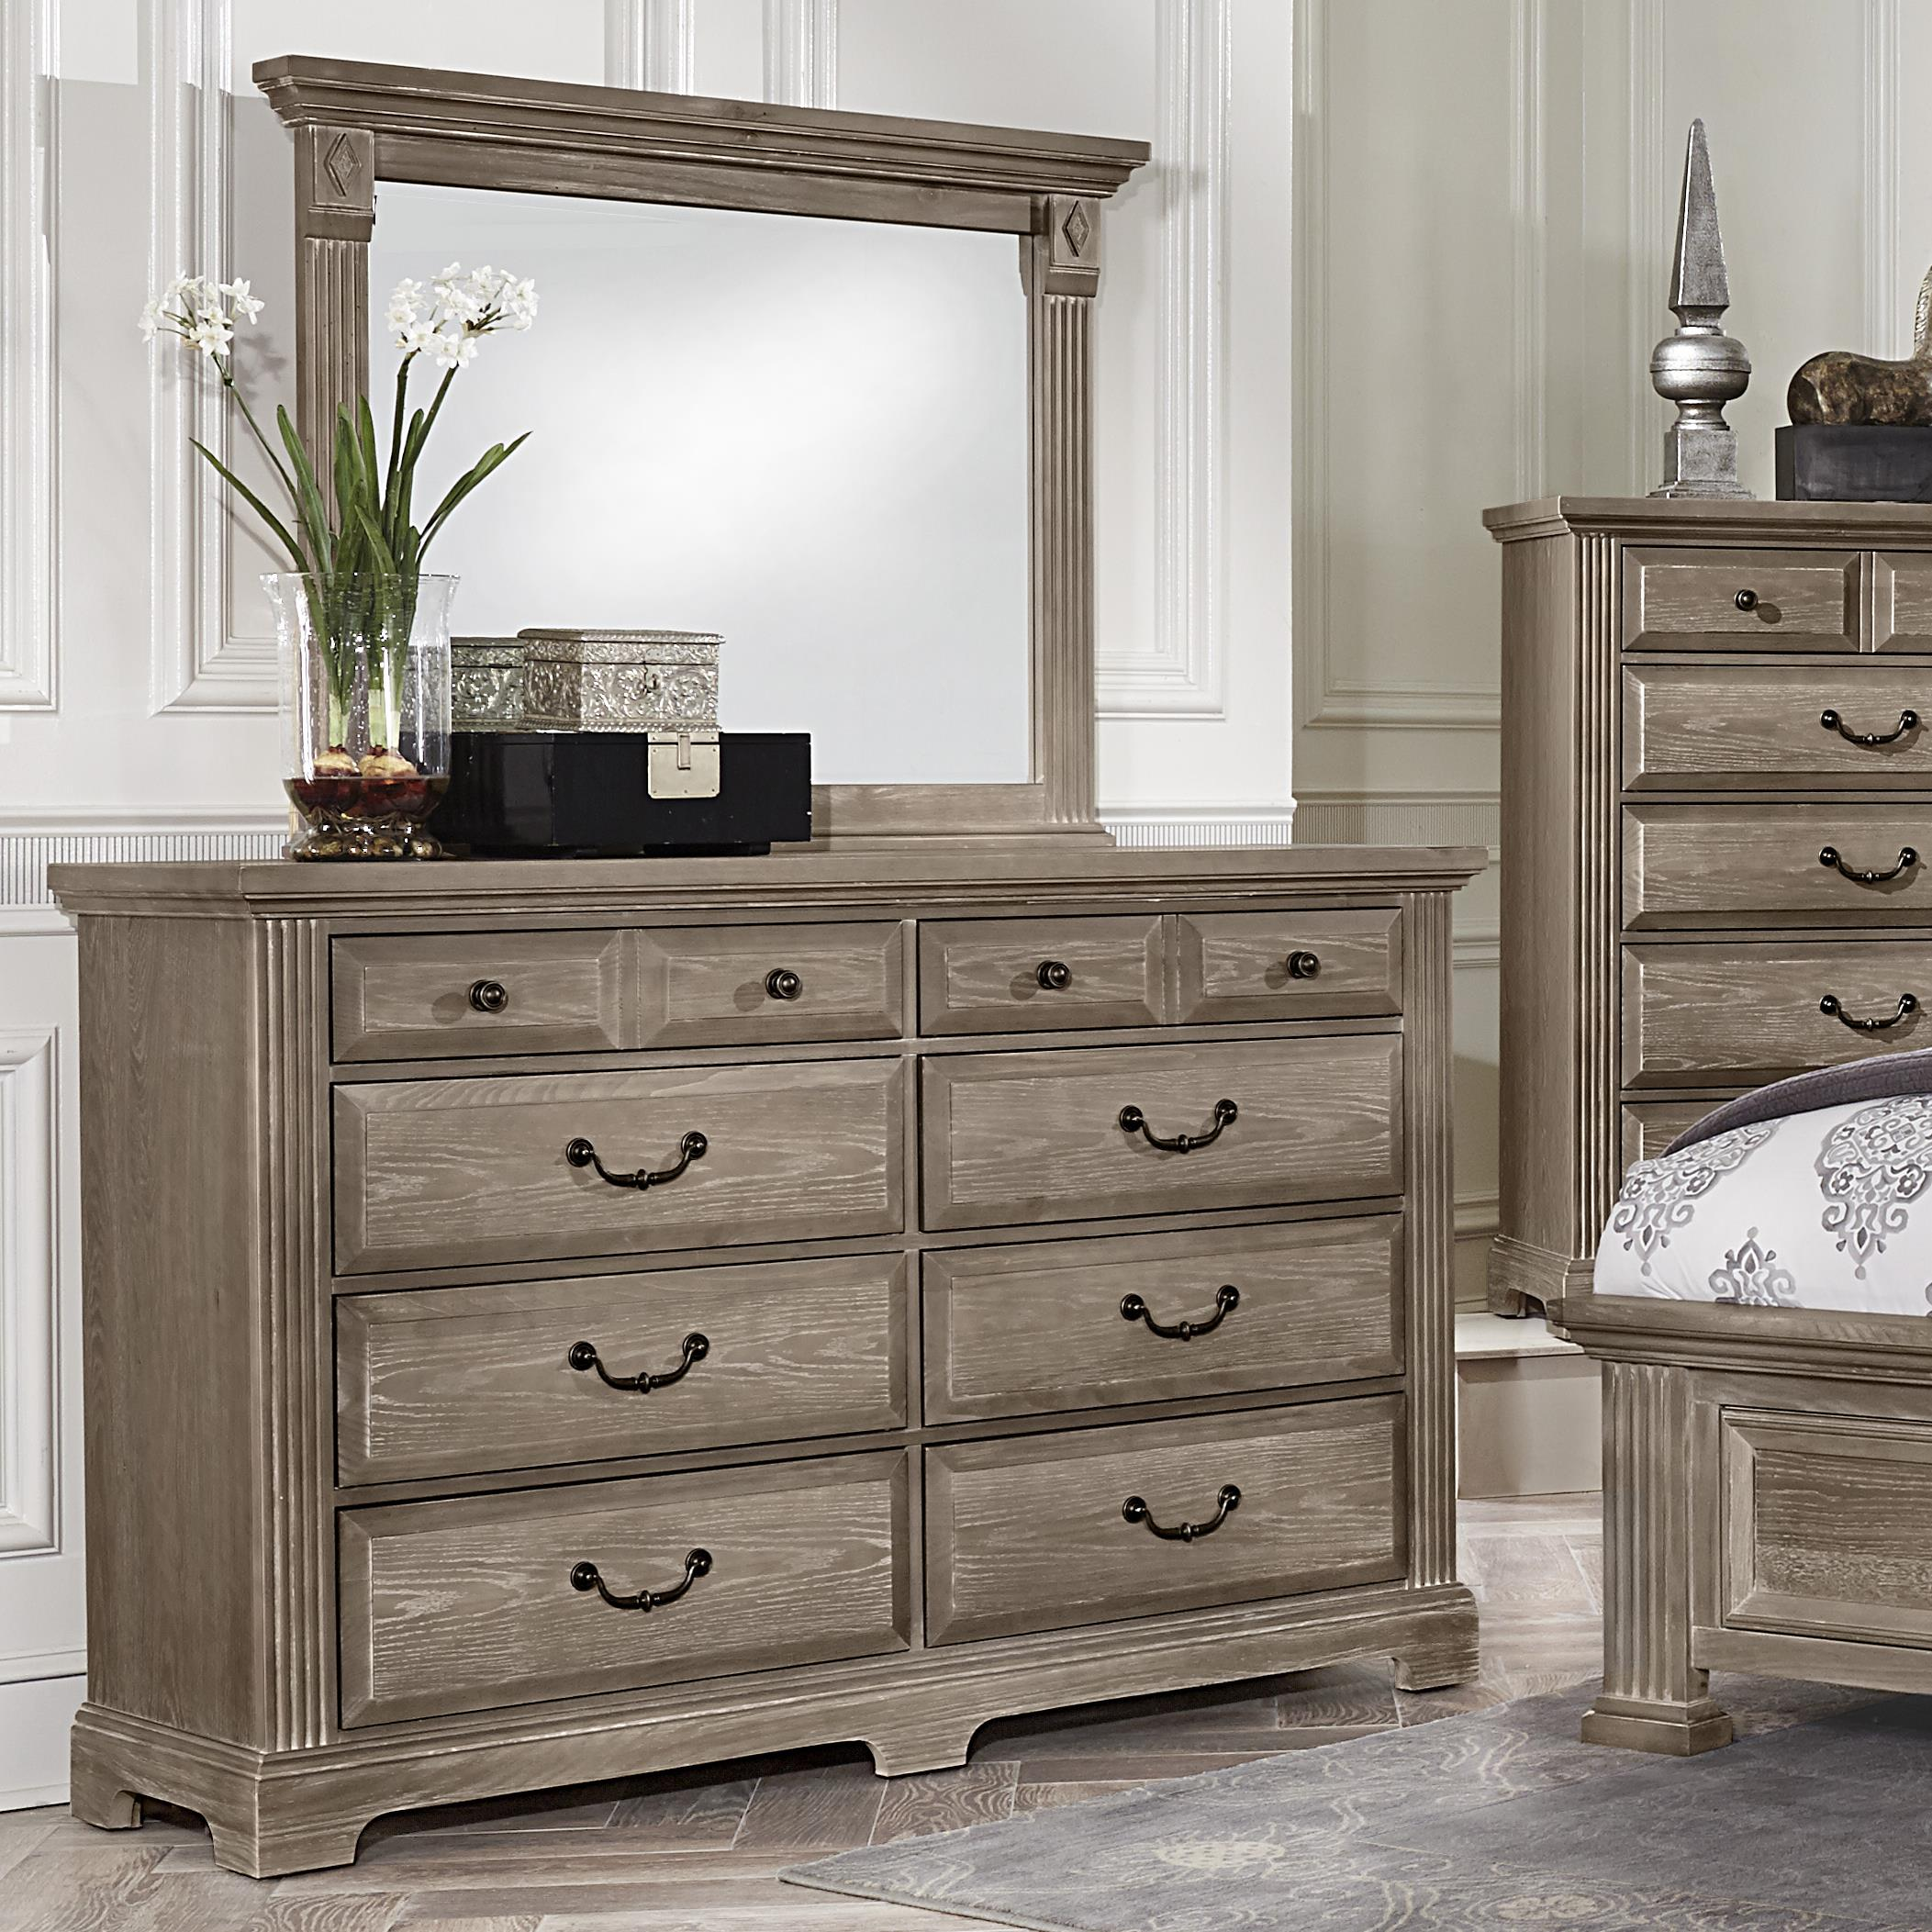 Vaughan Bassett Woodlands Triple Dresser & Landscape Mirror - Item Number: BB96-002+446